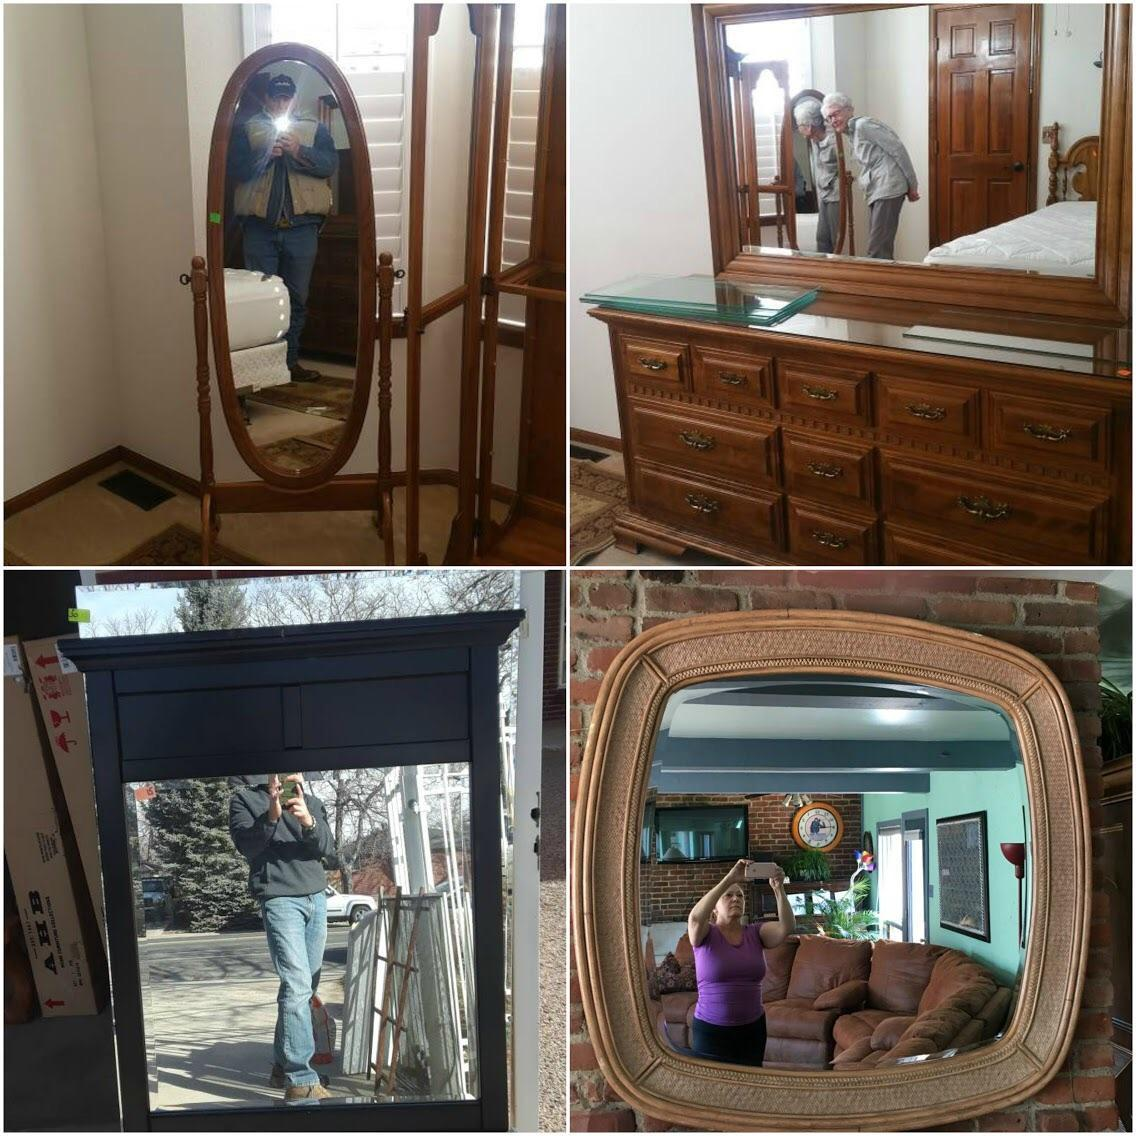 This honestly is my new favorite hobby. Can we get a subreddit dedicated to craigslist mirror selfies?